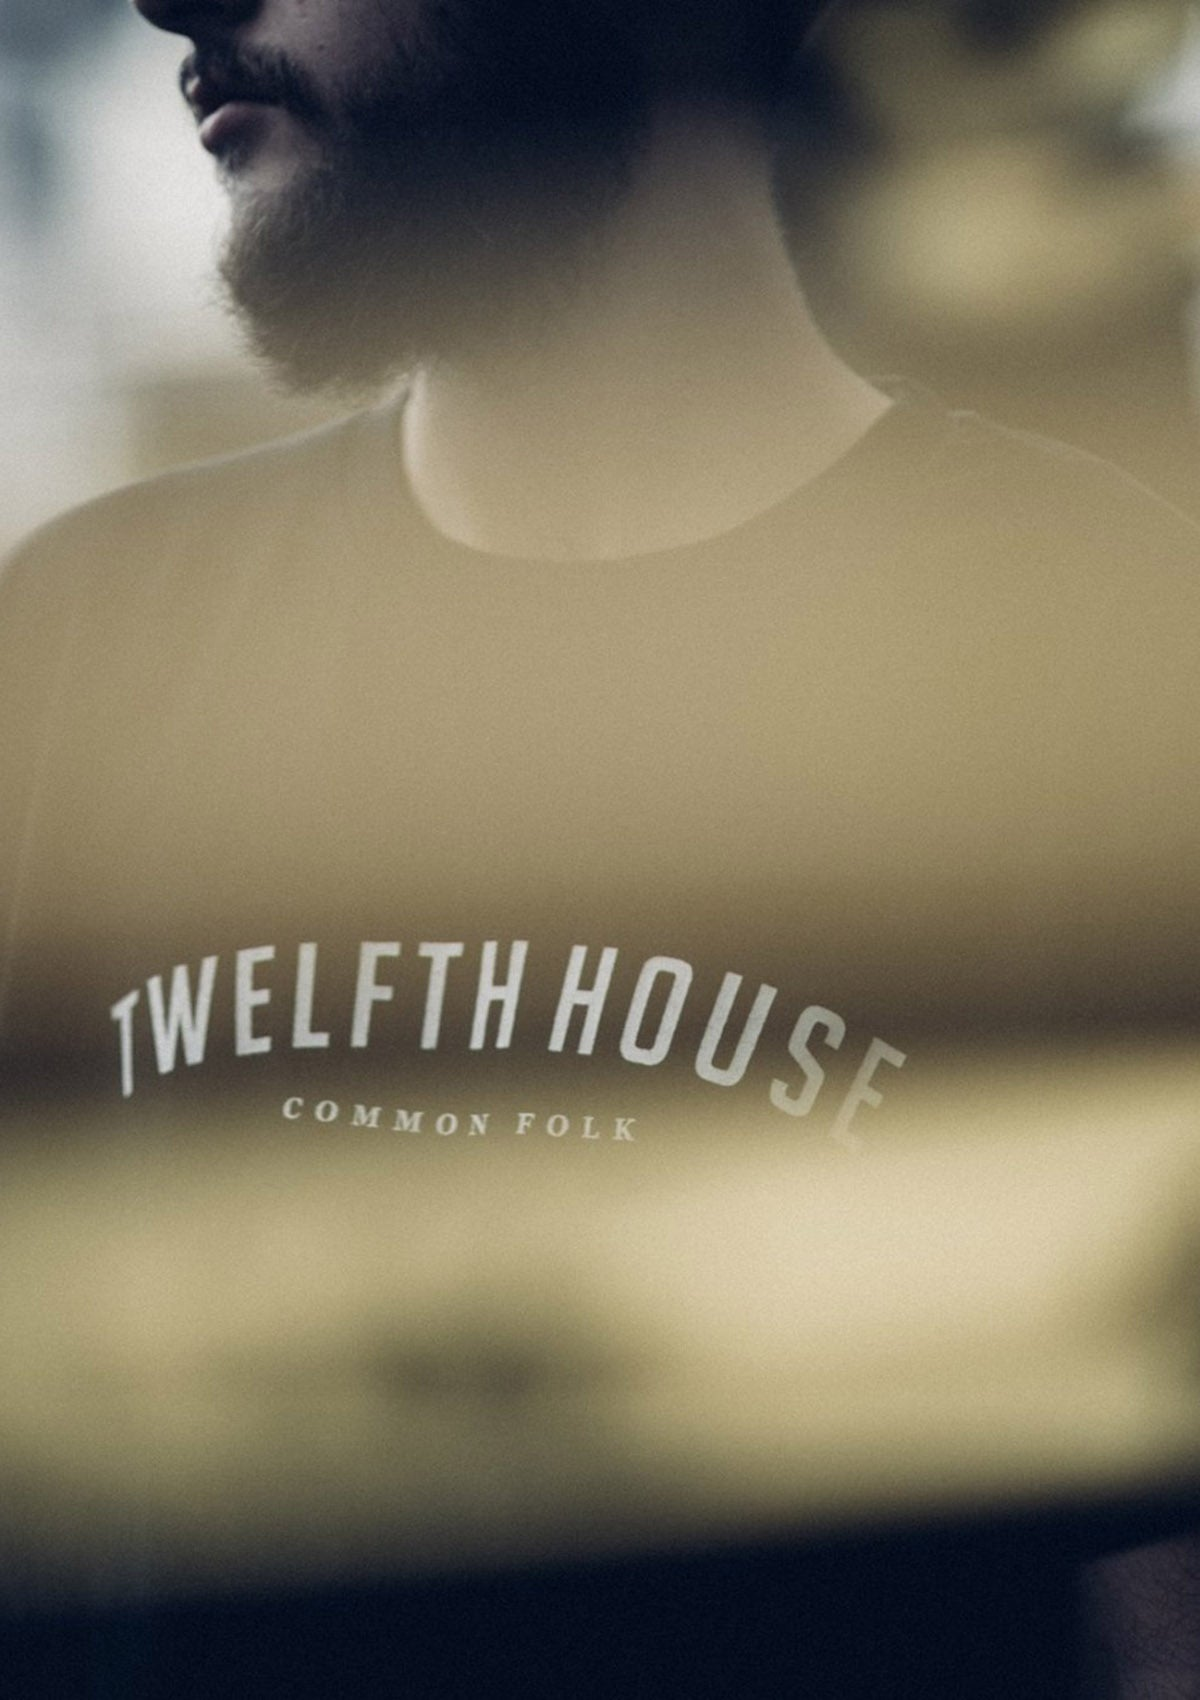 The Twelfth House 2016 / Issue 7